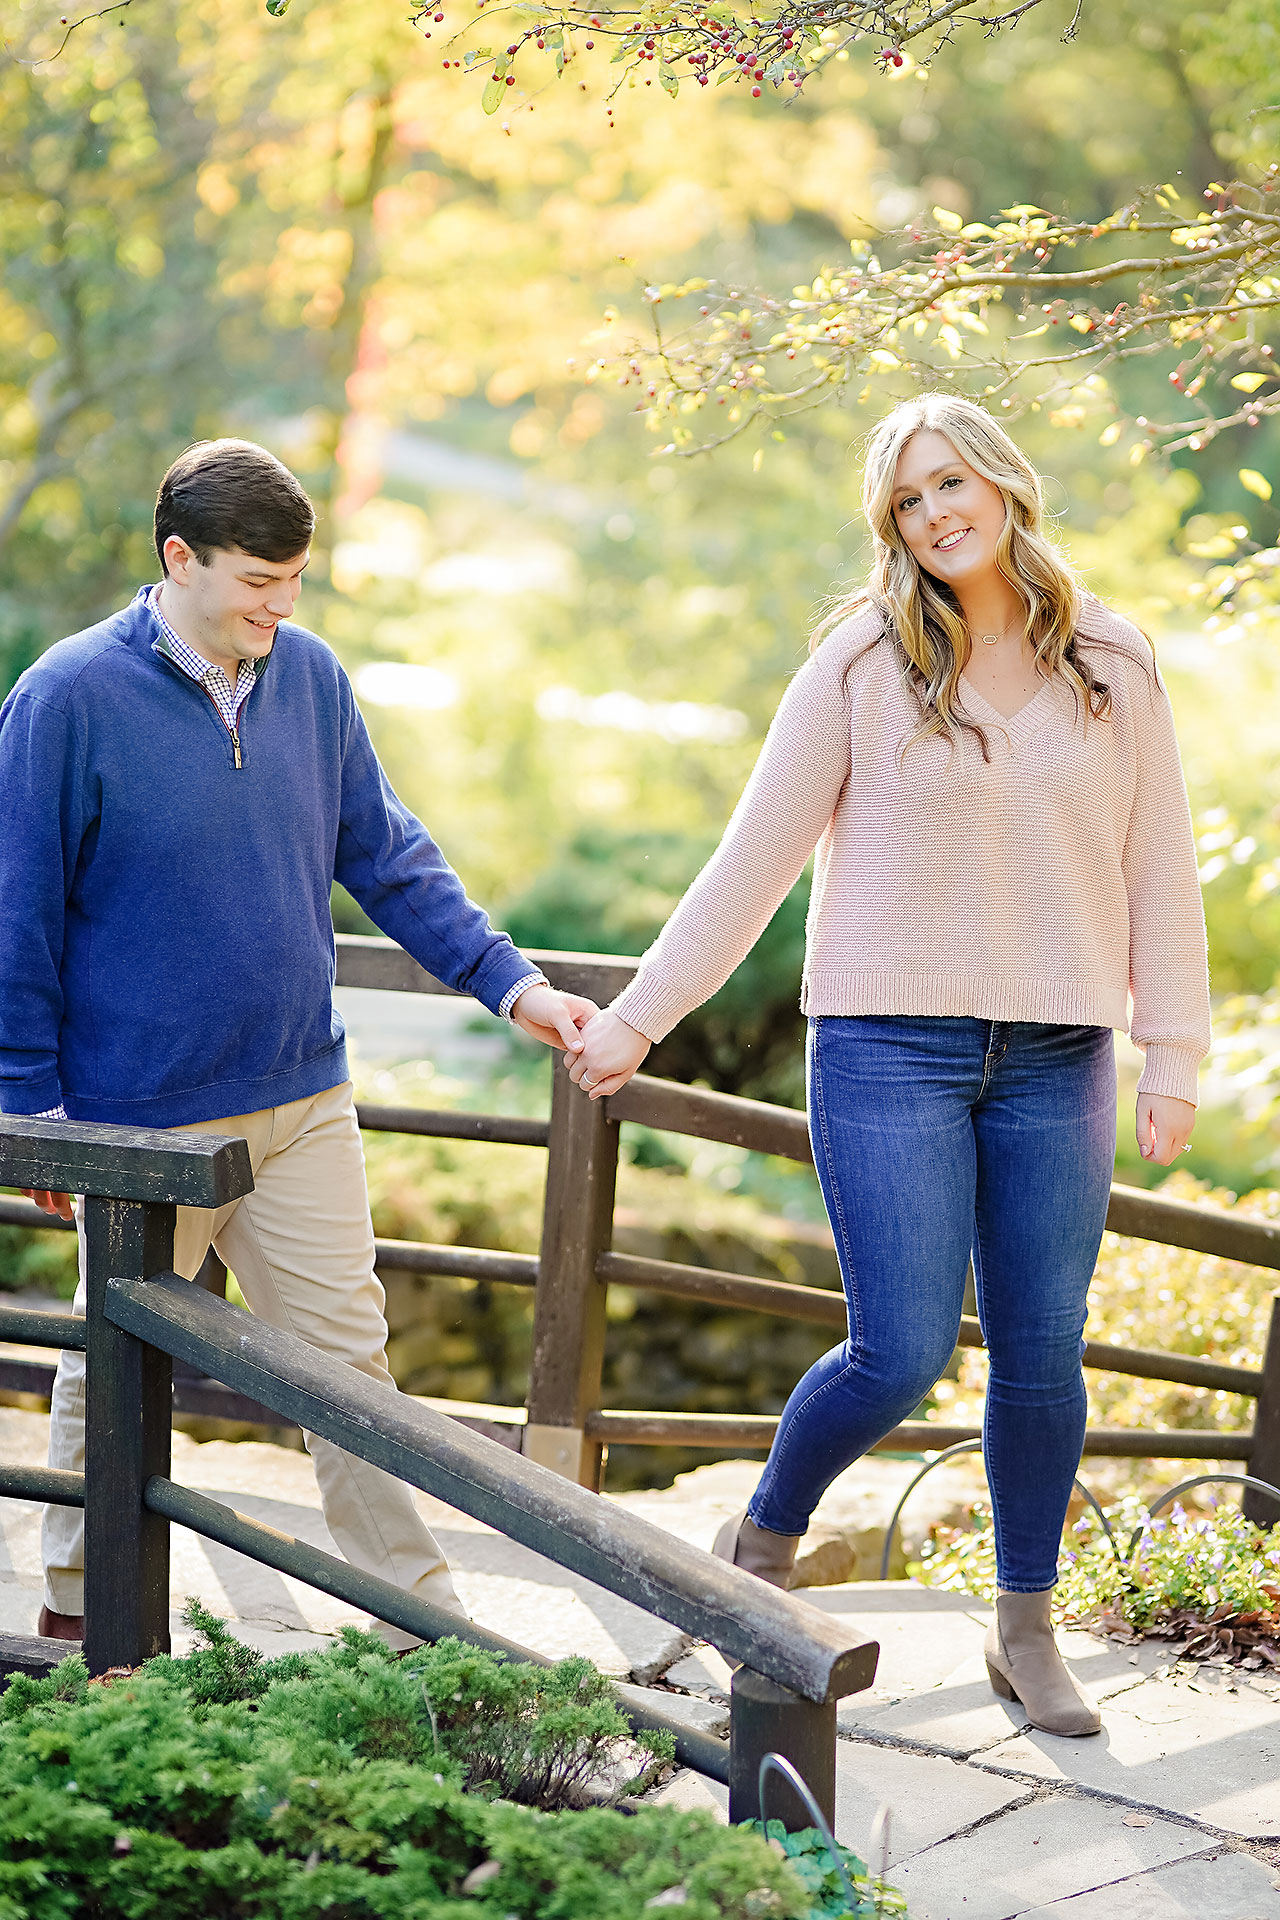 Taylor Case Newfields Engagement Session 123